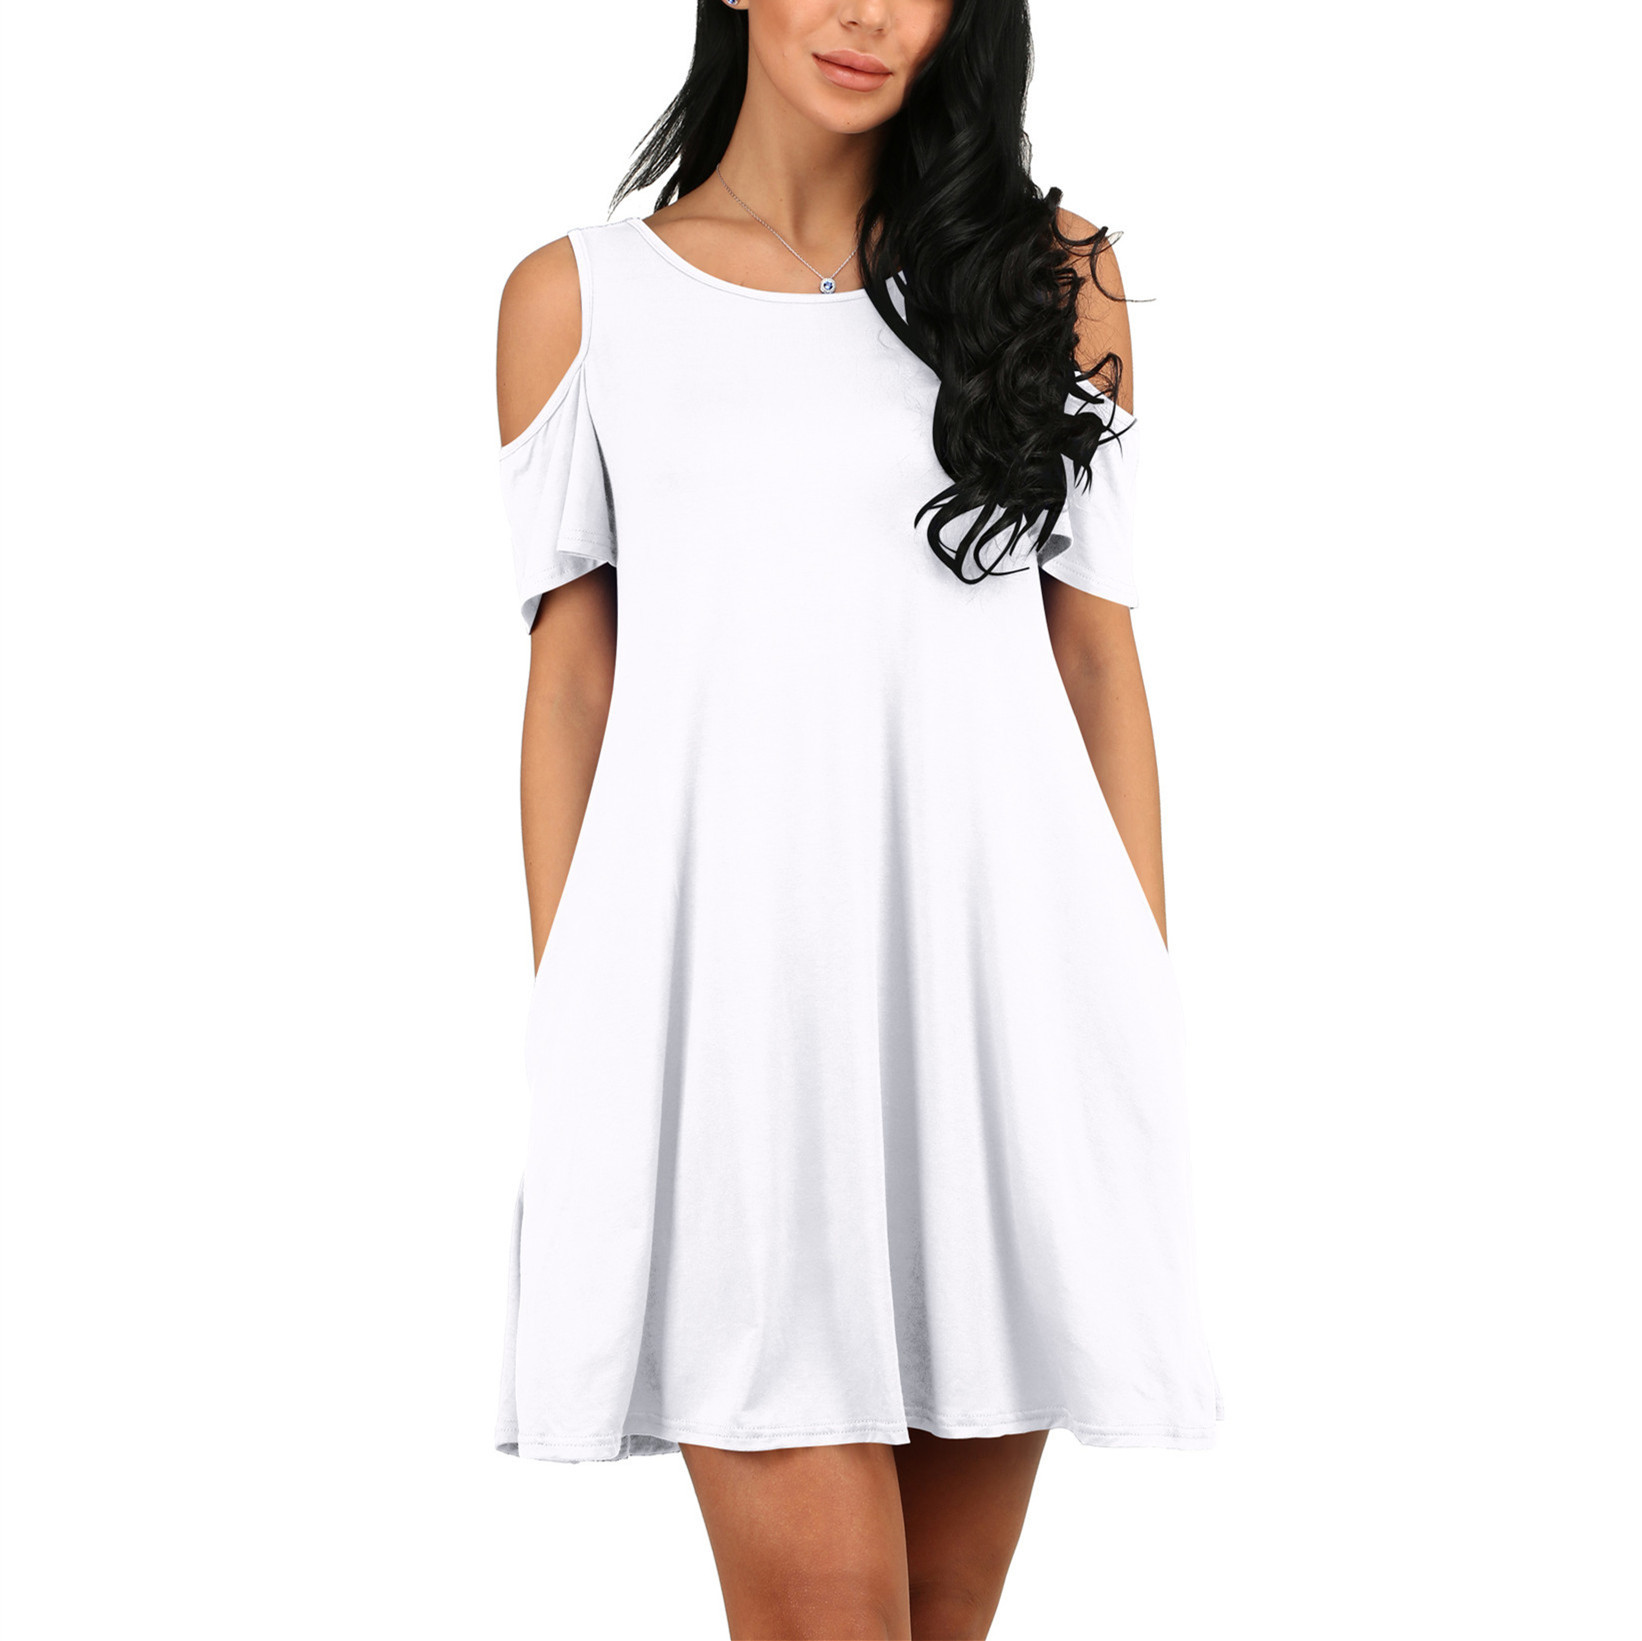 fc496fc66dd97 Style  Round neck cold shoulder swing dresses with side pocket. Garment  Care  Hand-wash with similar color and machine washable